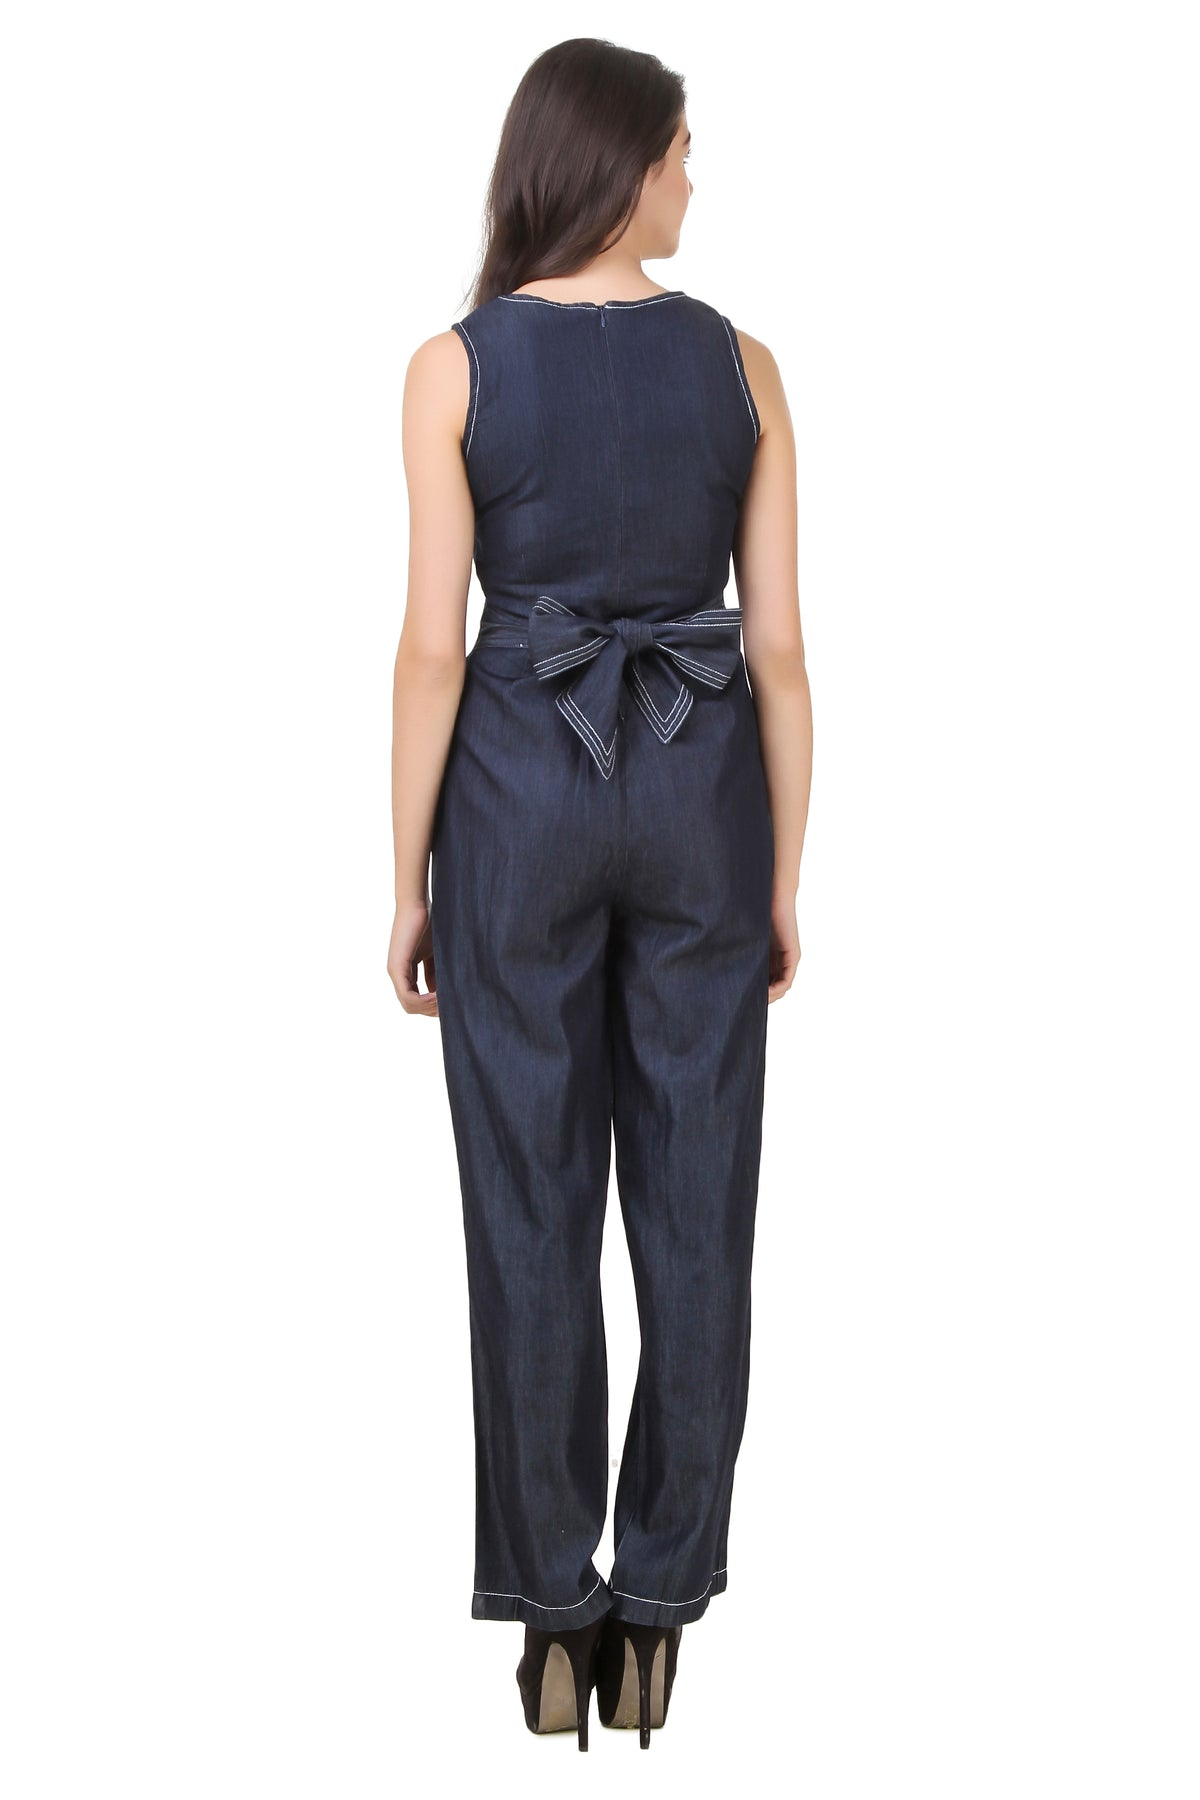 Chic Mechanic Jumpsuit (Limited stock)